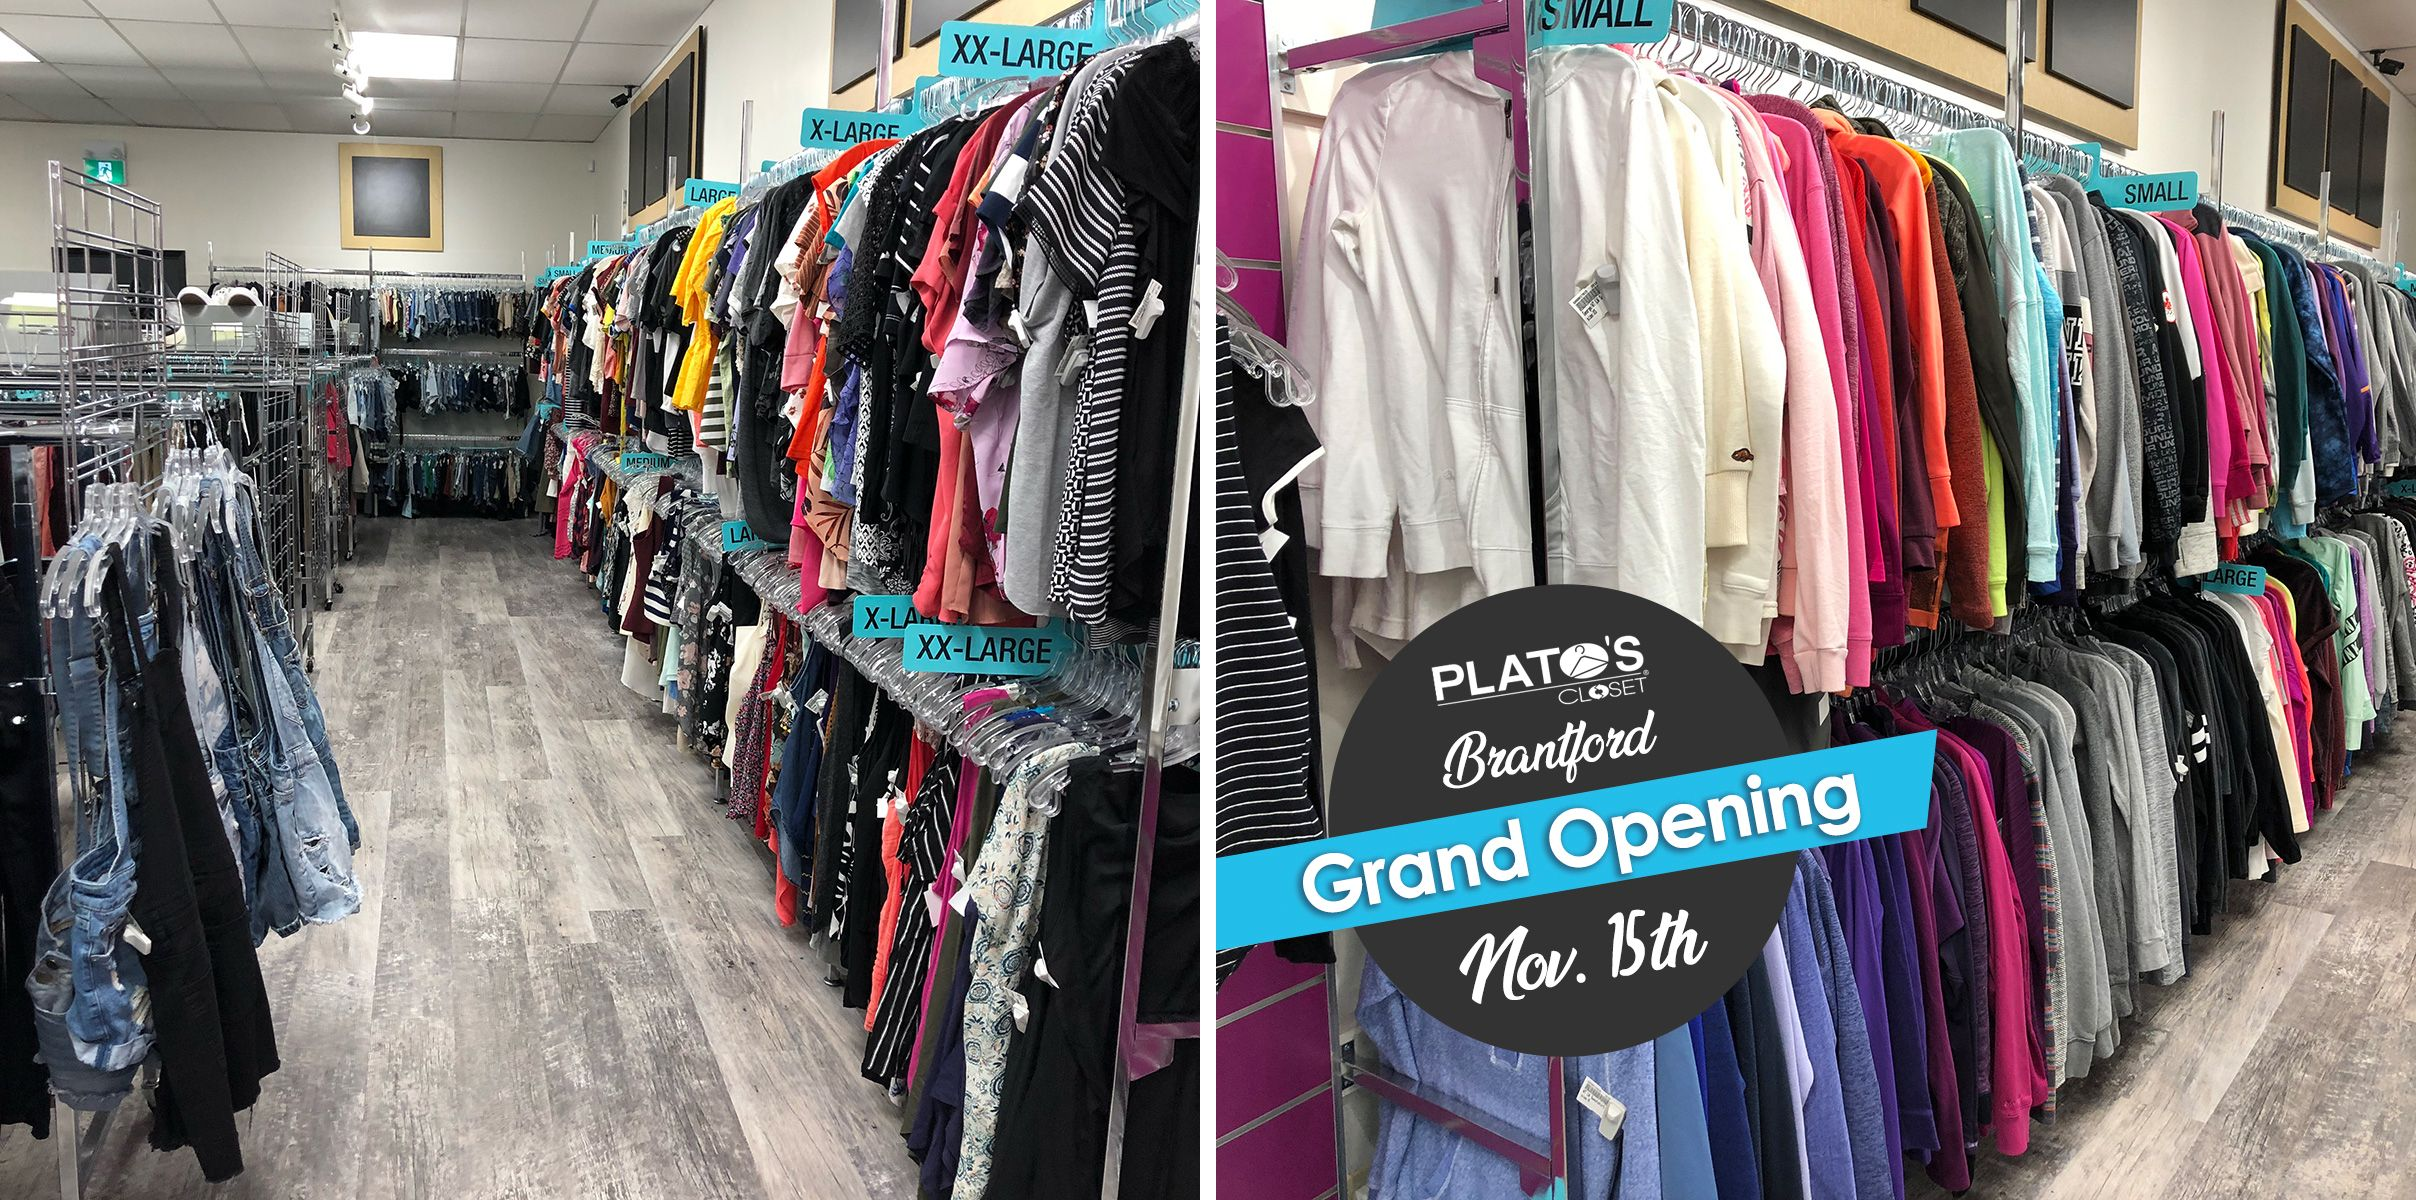 Big Bigger Best That S Our Motto Brantford When It Comes To All Things Trendy Fashionable We Can T Eve Outfits For Teens Used Clothing Stores Clothes